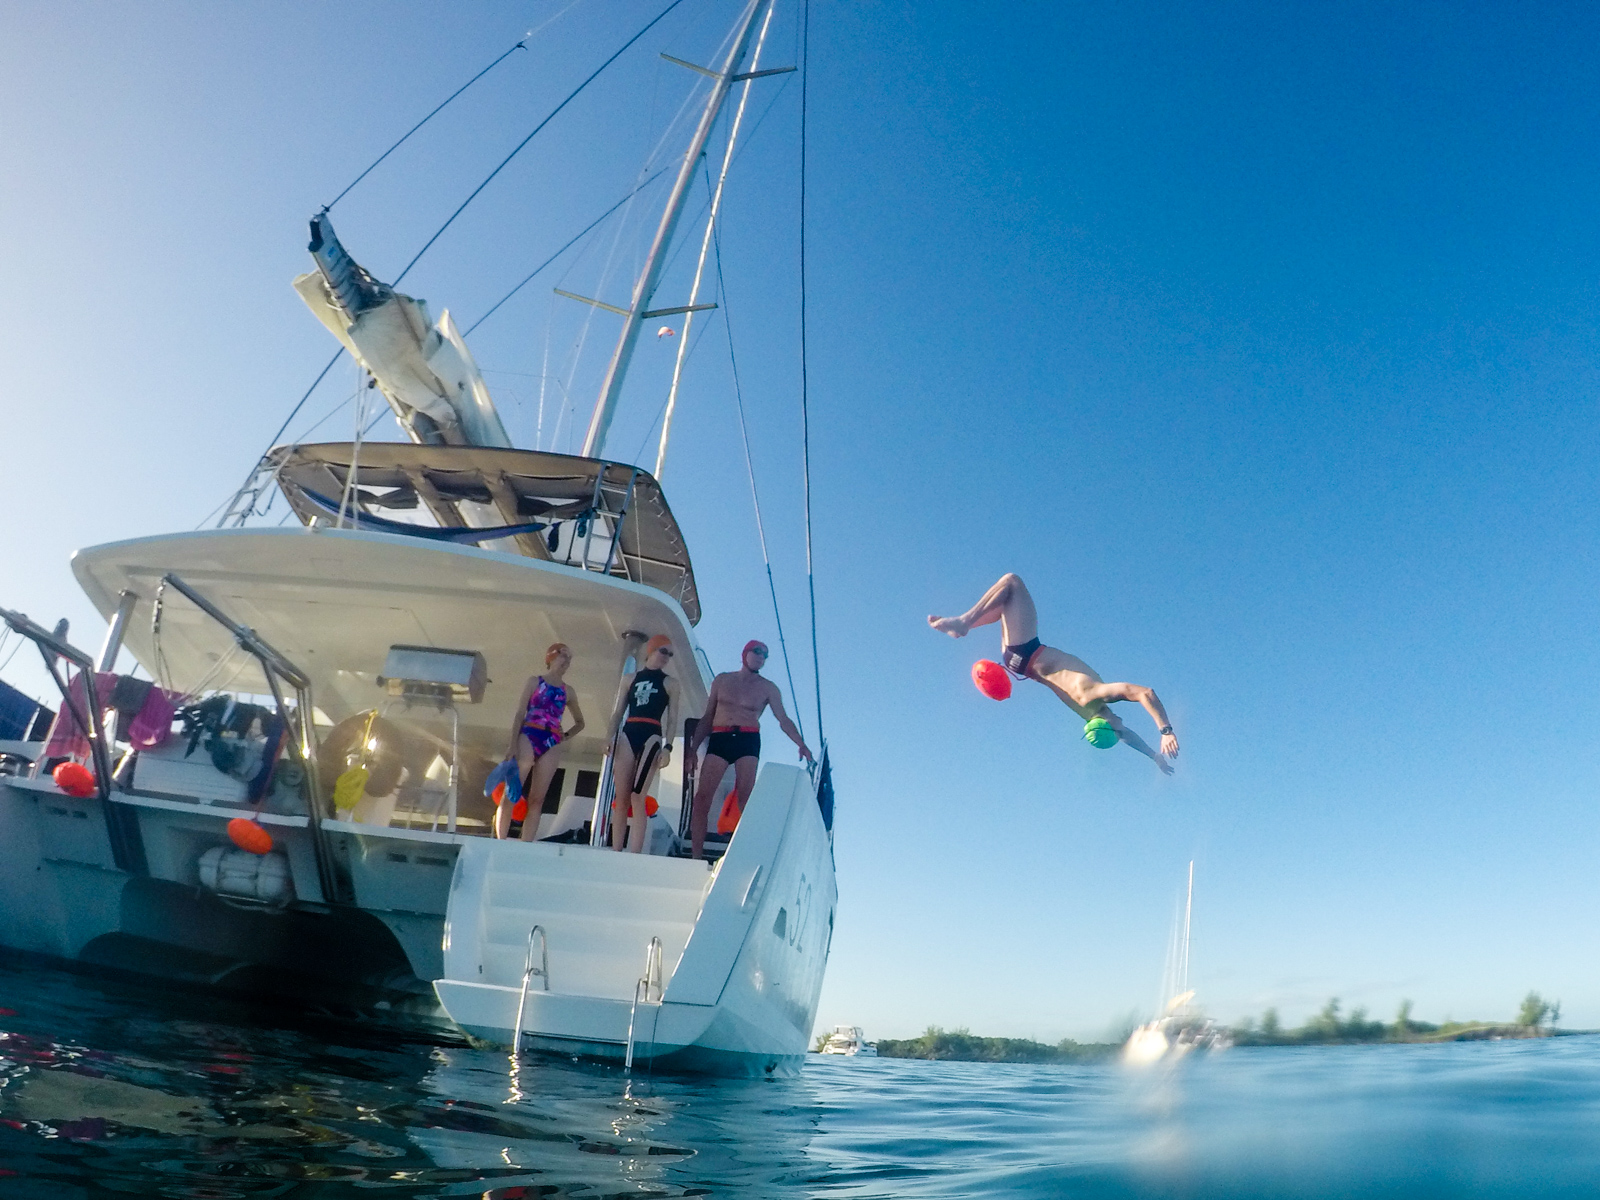 Deckhand Zack is VERY excited to join us in the water for guide duties. He landed this flip and guided like a pro.